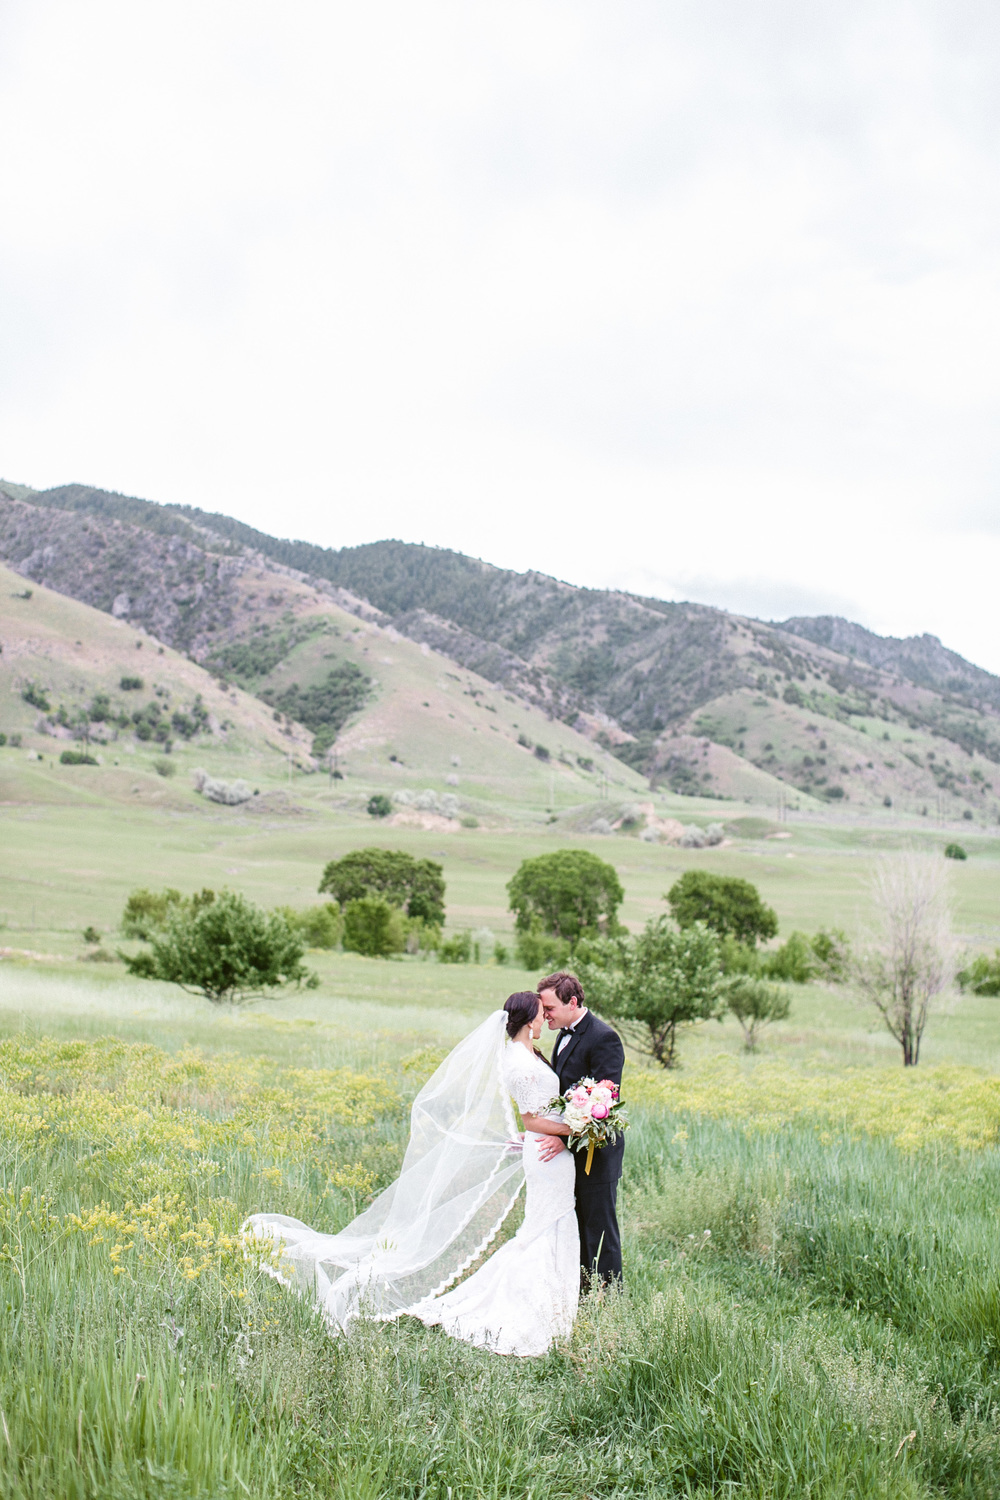 Logan, Utah Wedding | Jasmine Star | Michelle Leo Events | Utah Wedding Design and Planning